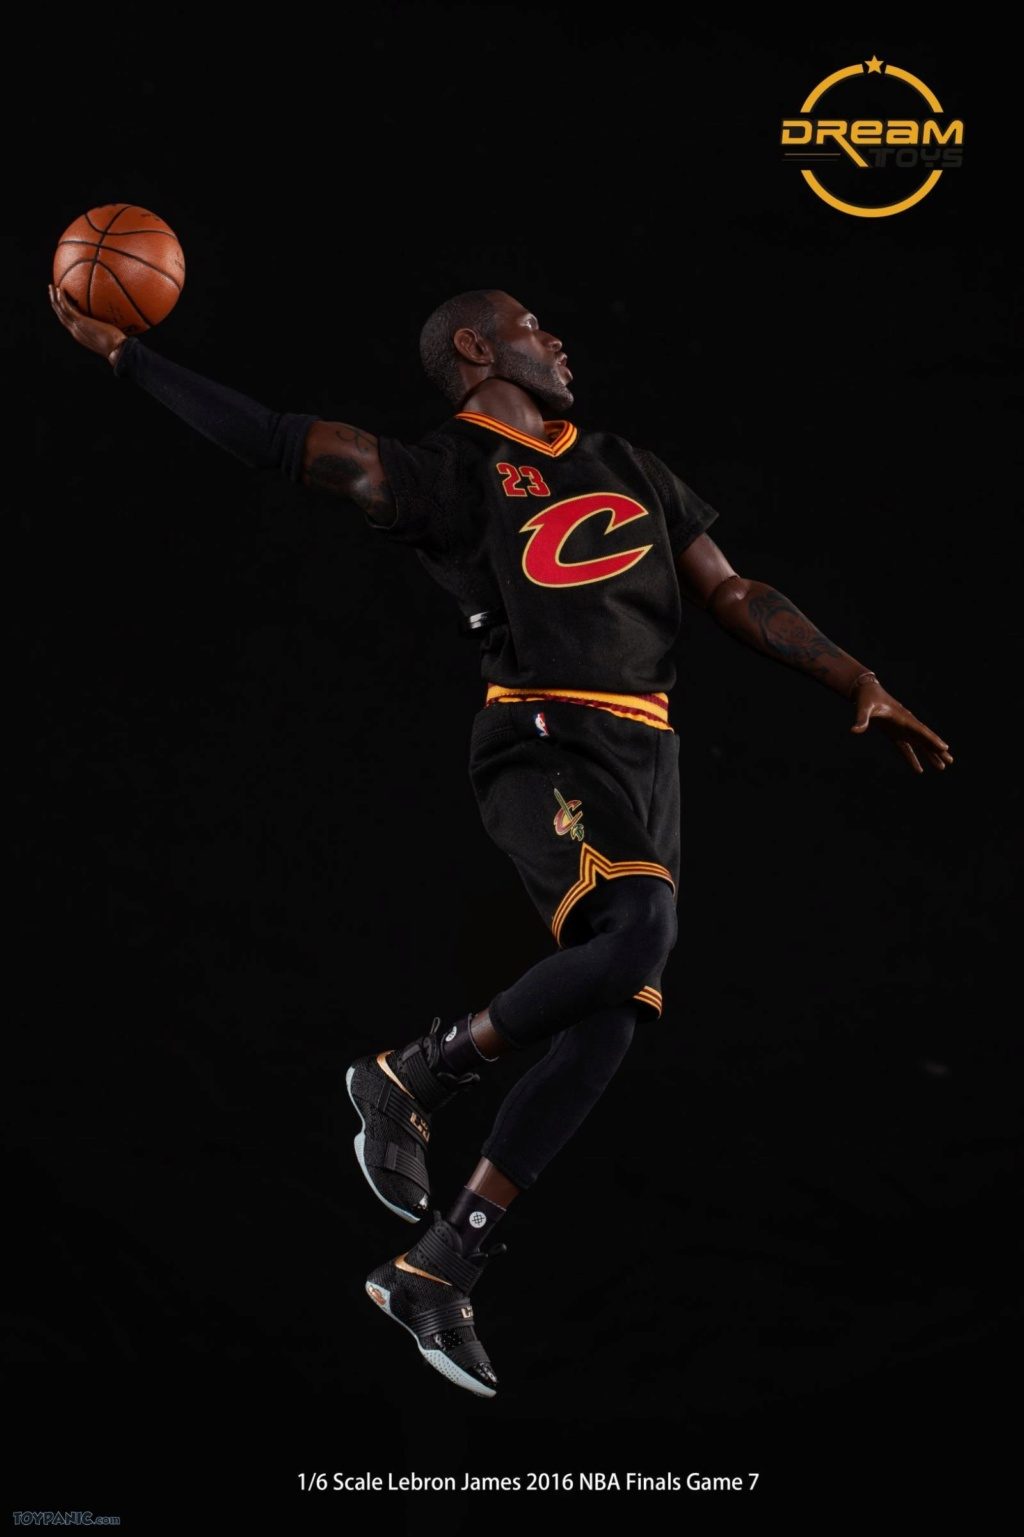 athlete - NEW PRODUCT: DreamToys: NBA Finals Jordan, Bryant, & James 1/6 scale action figures 11420248